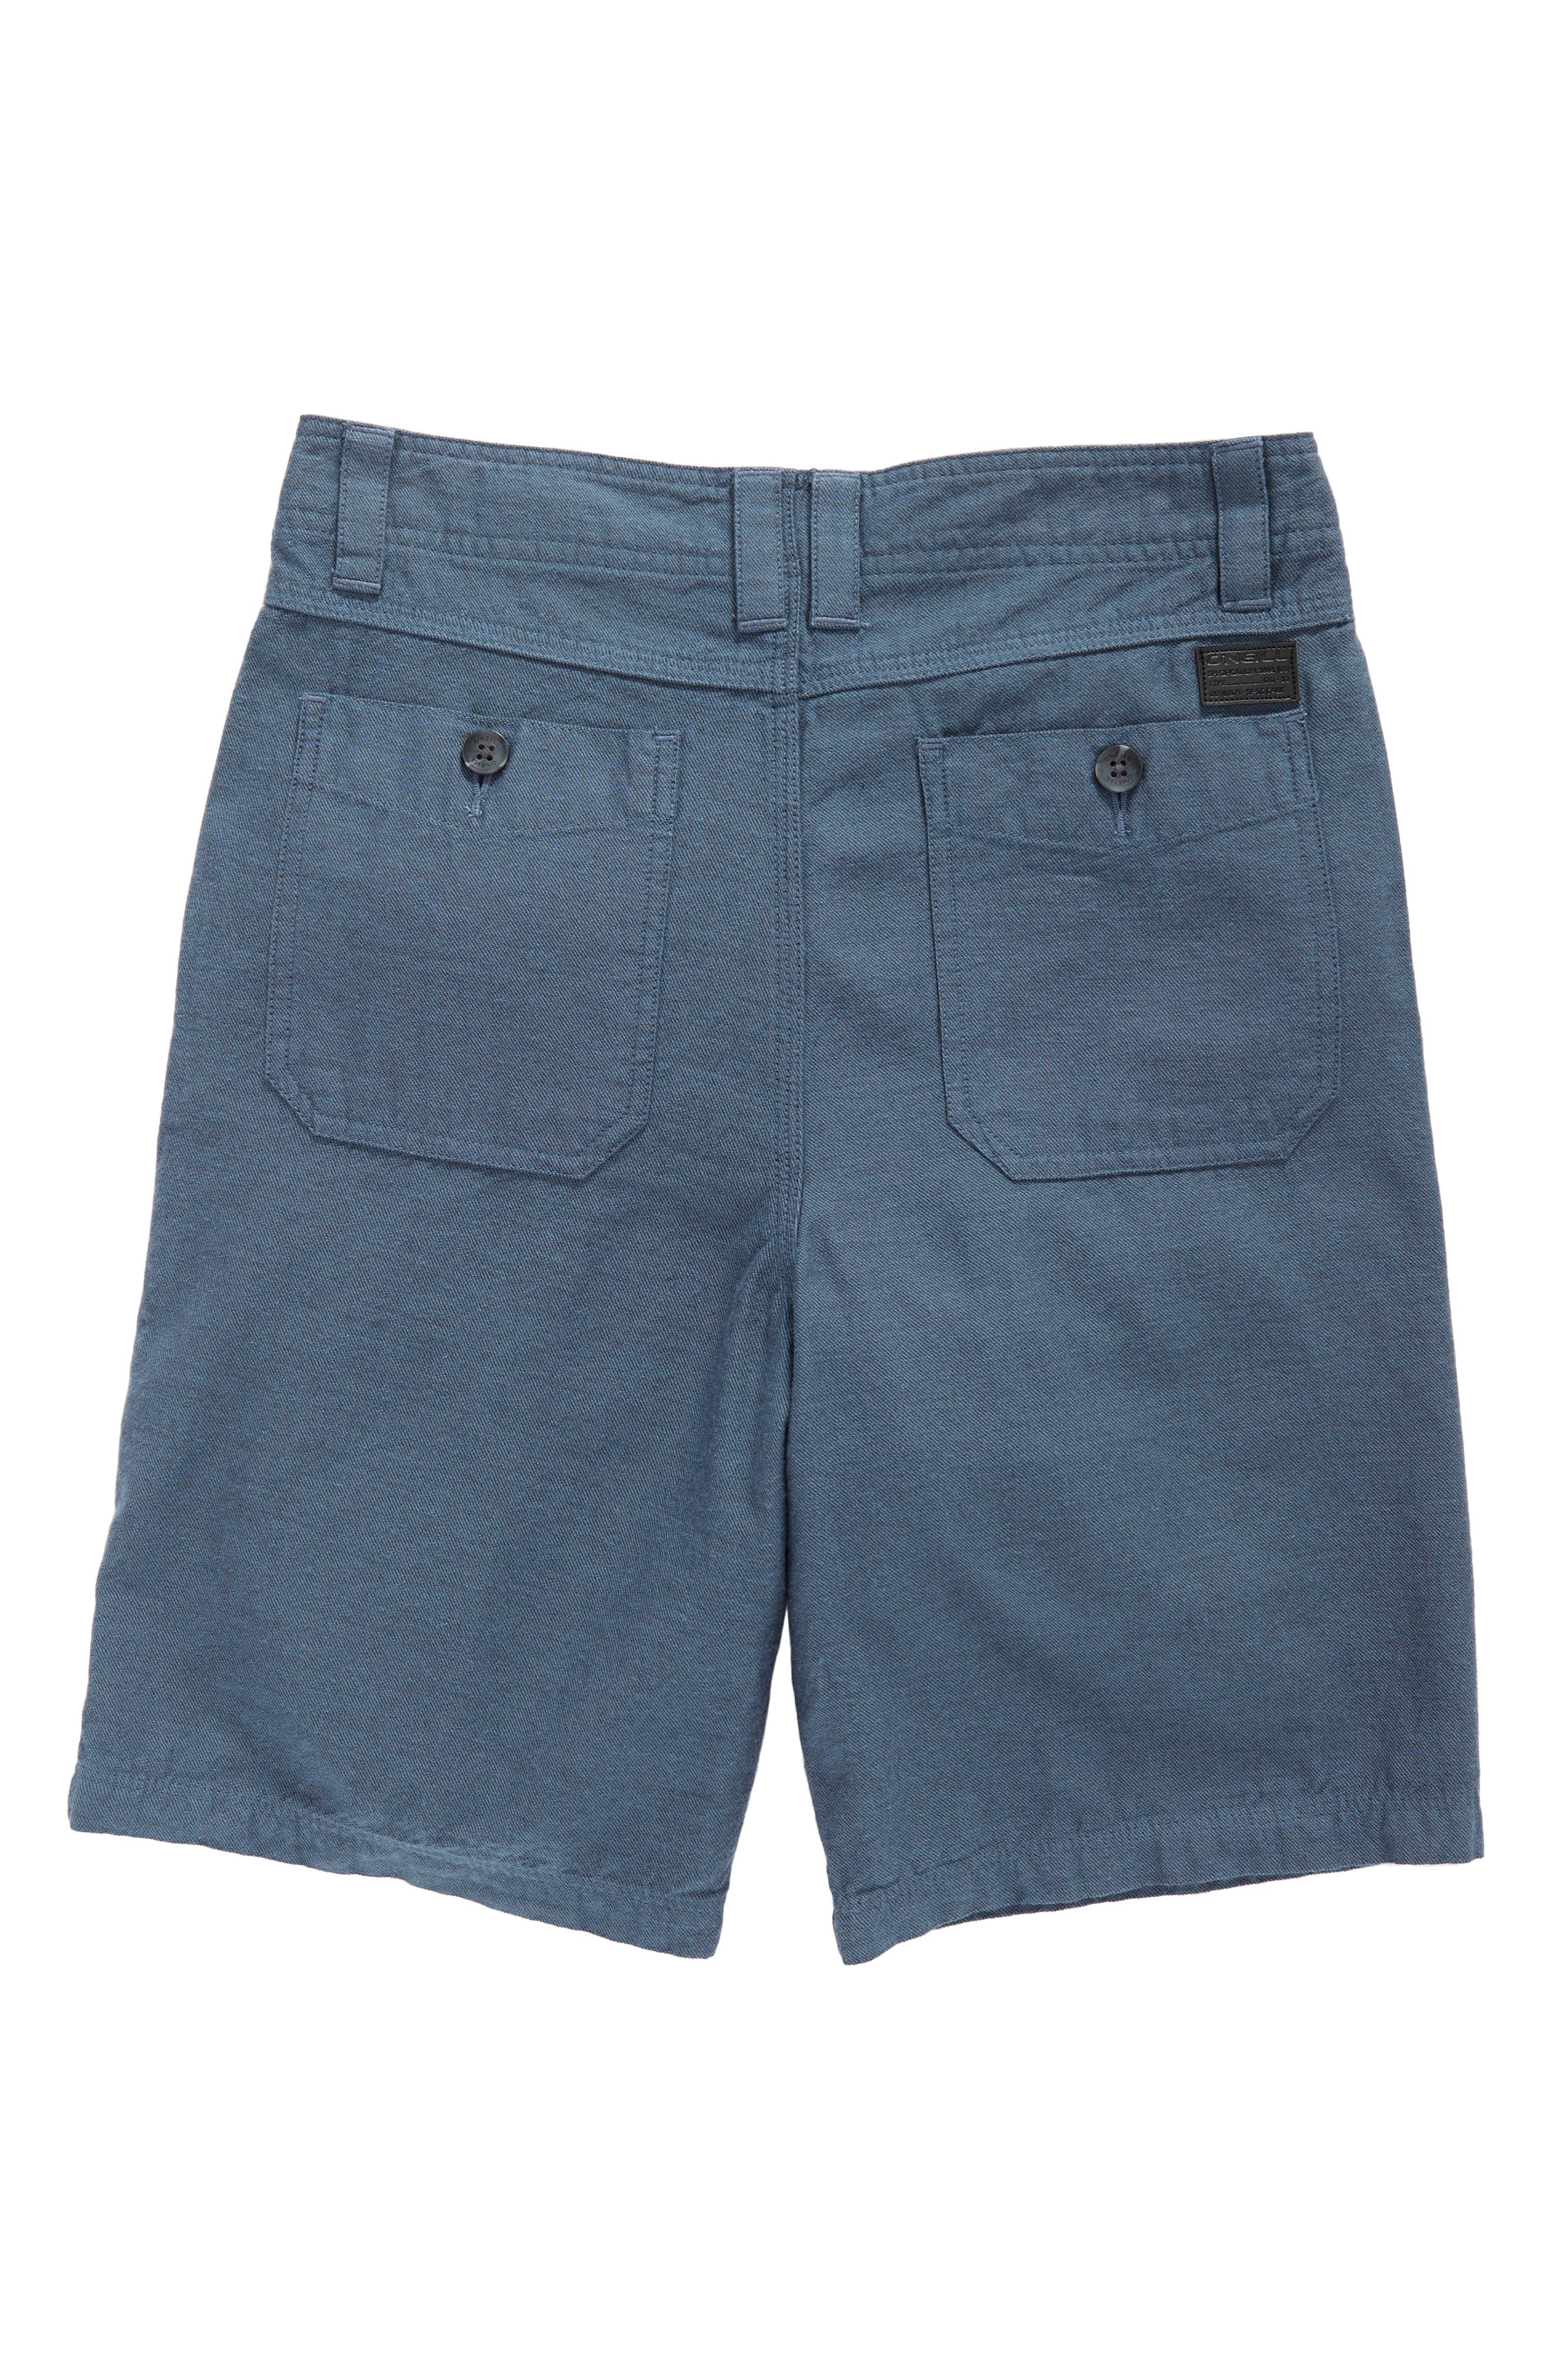 Scranton Chino Shorts,                             Alternate thumbnail 3, color,                             028